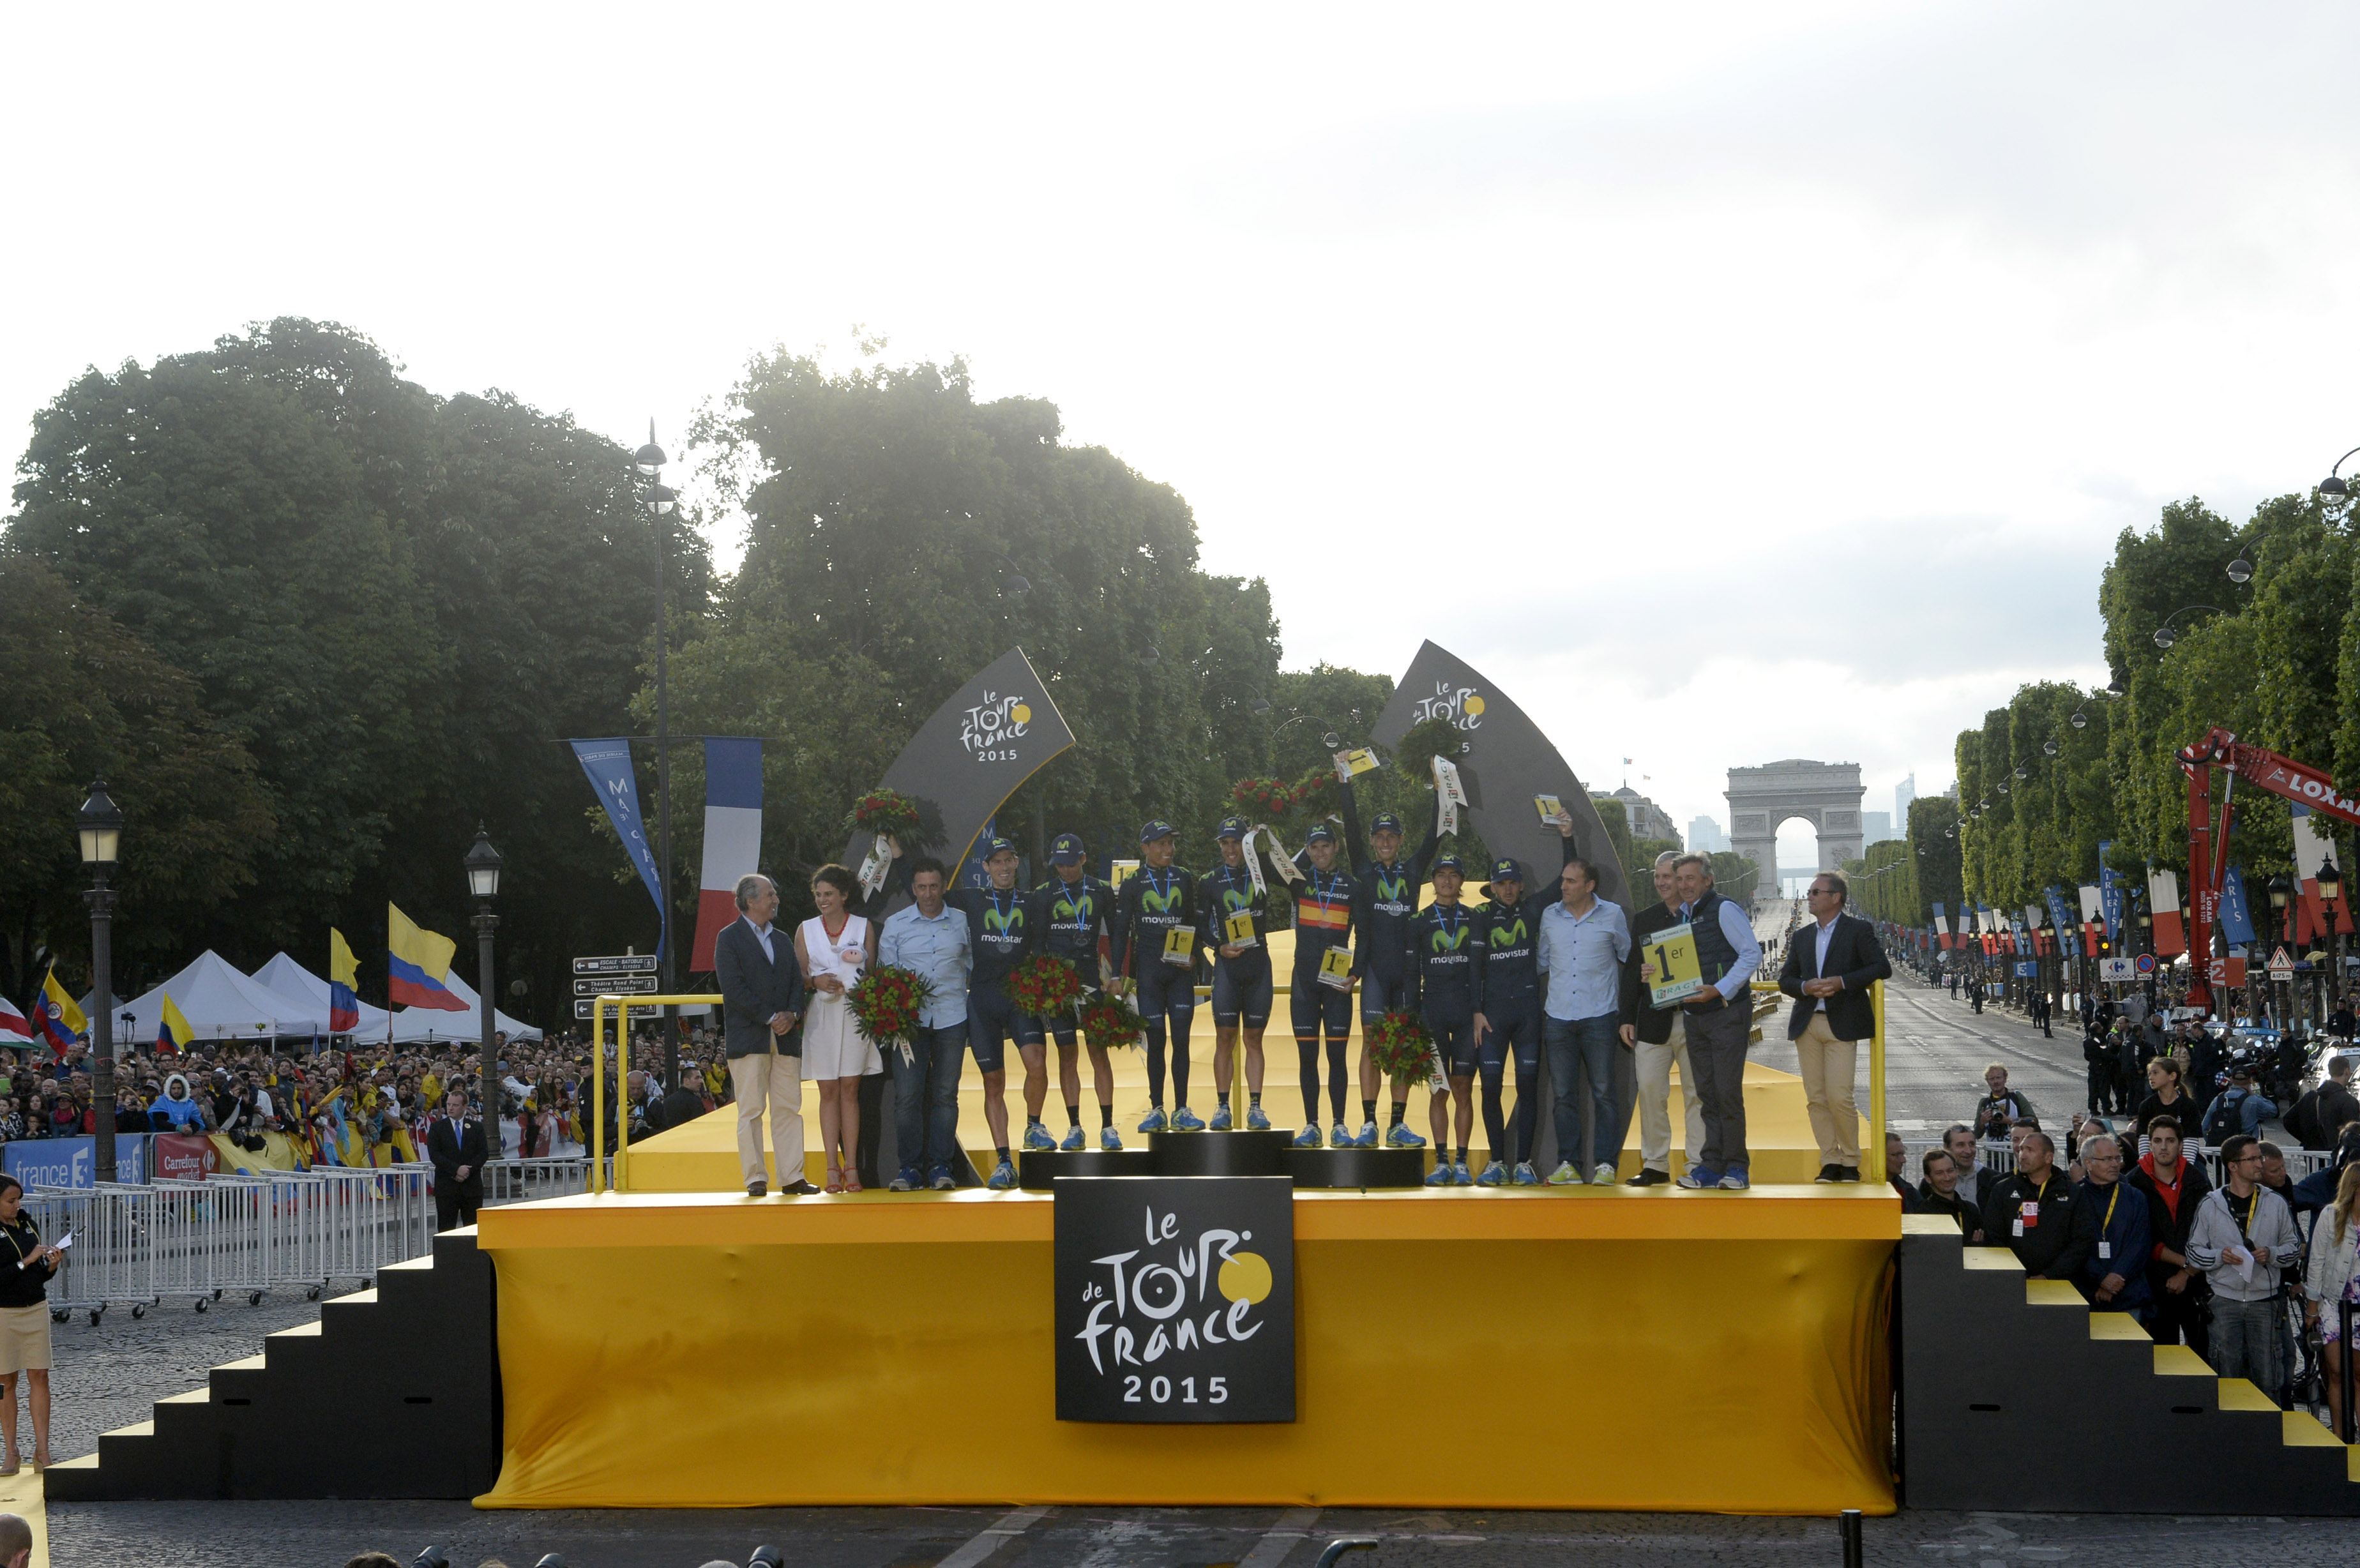 Movistar hat die Teamwertung der Tour de France 2015 gewonnen. (pic: Sirotti)